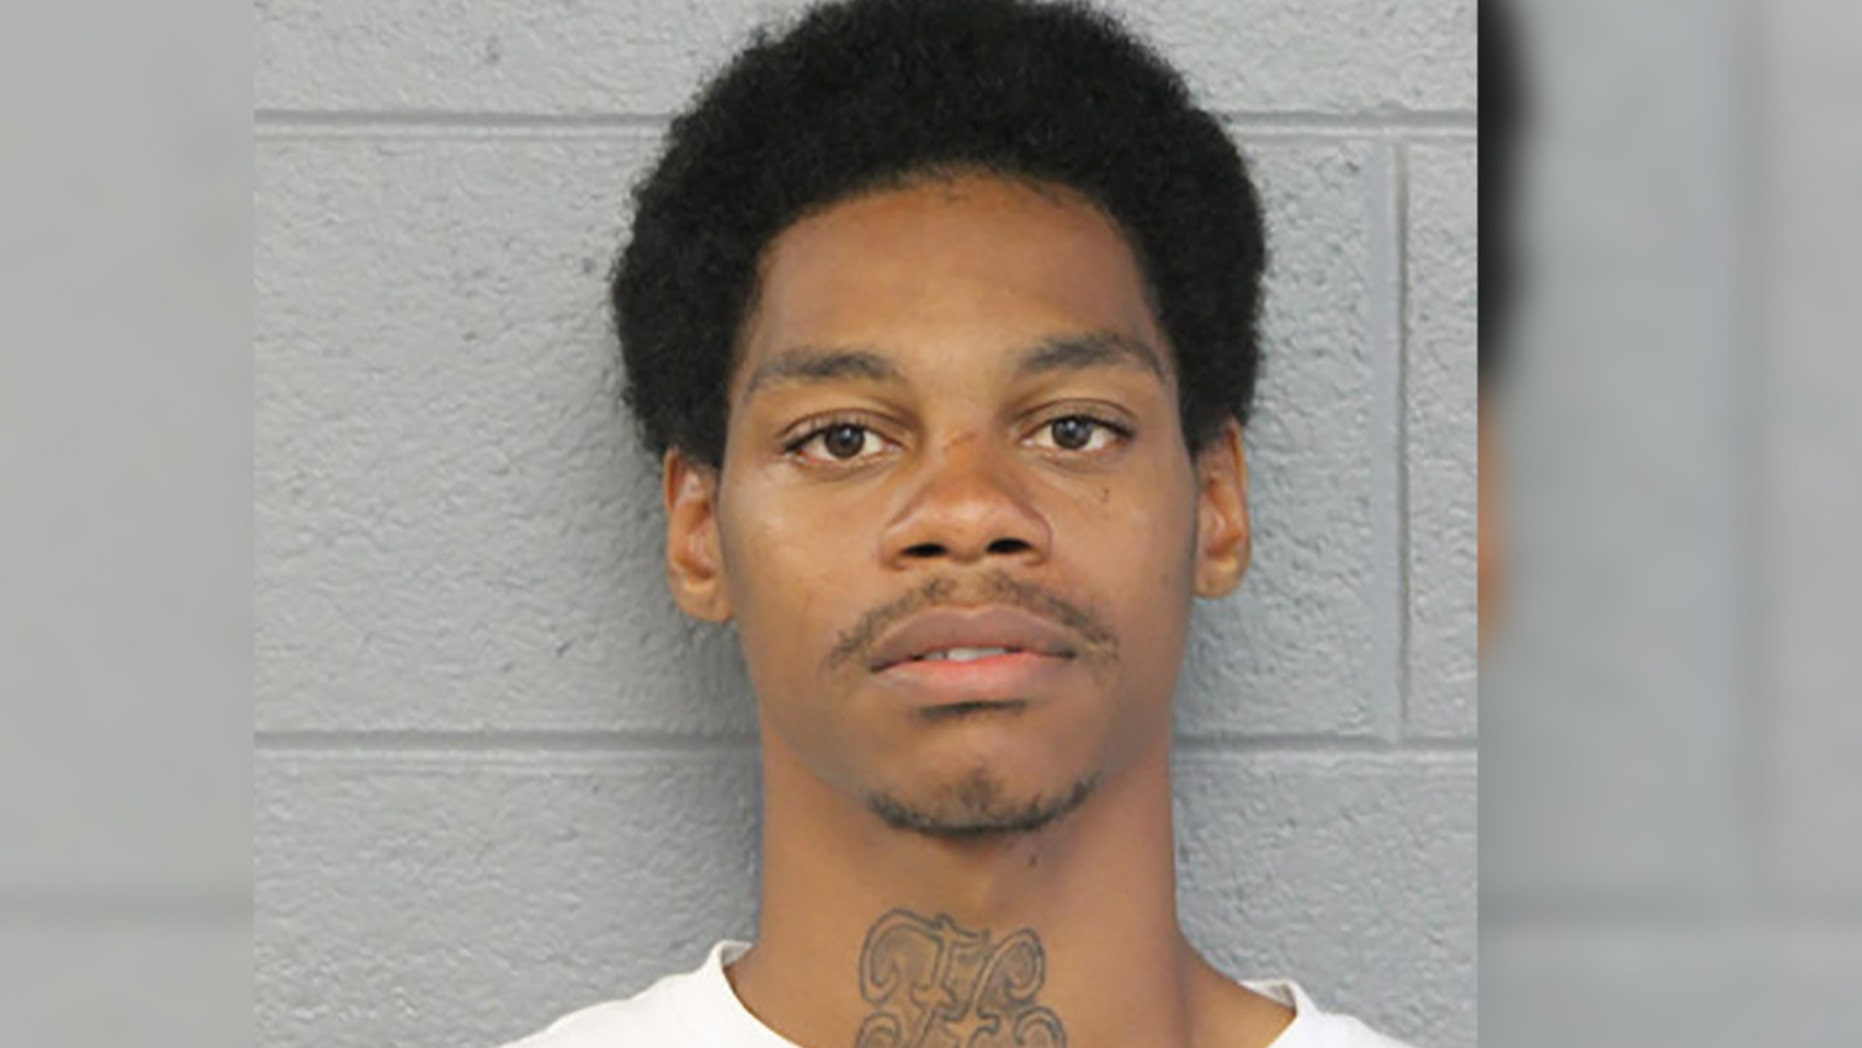 Donyell Austin, 23, is facing charges of attempted first-degree murder and aggravated batter for a Aug. 13 attack that was livestreamed on Facebook.